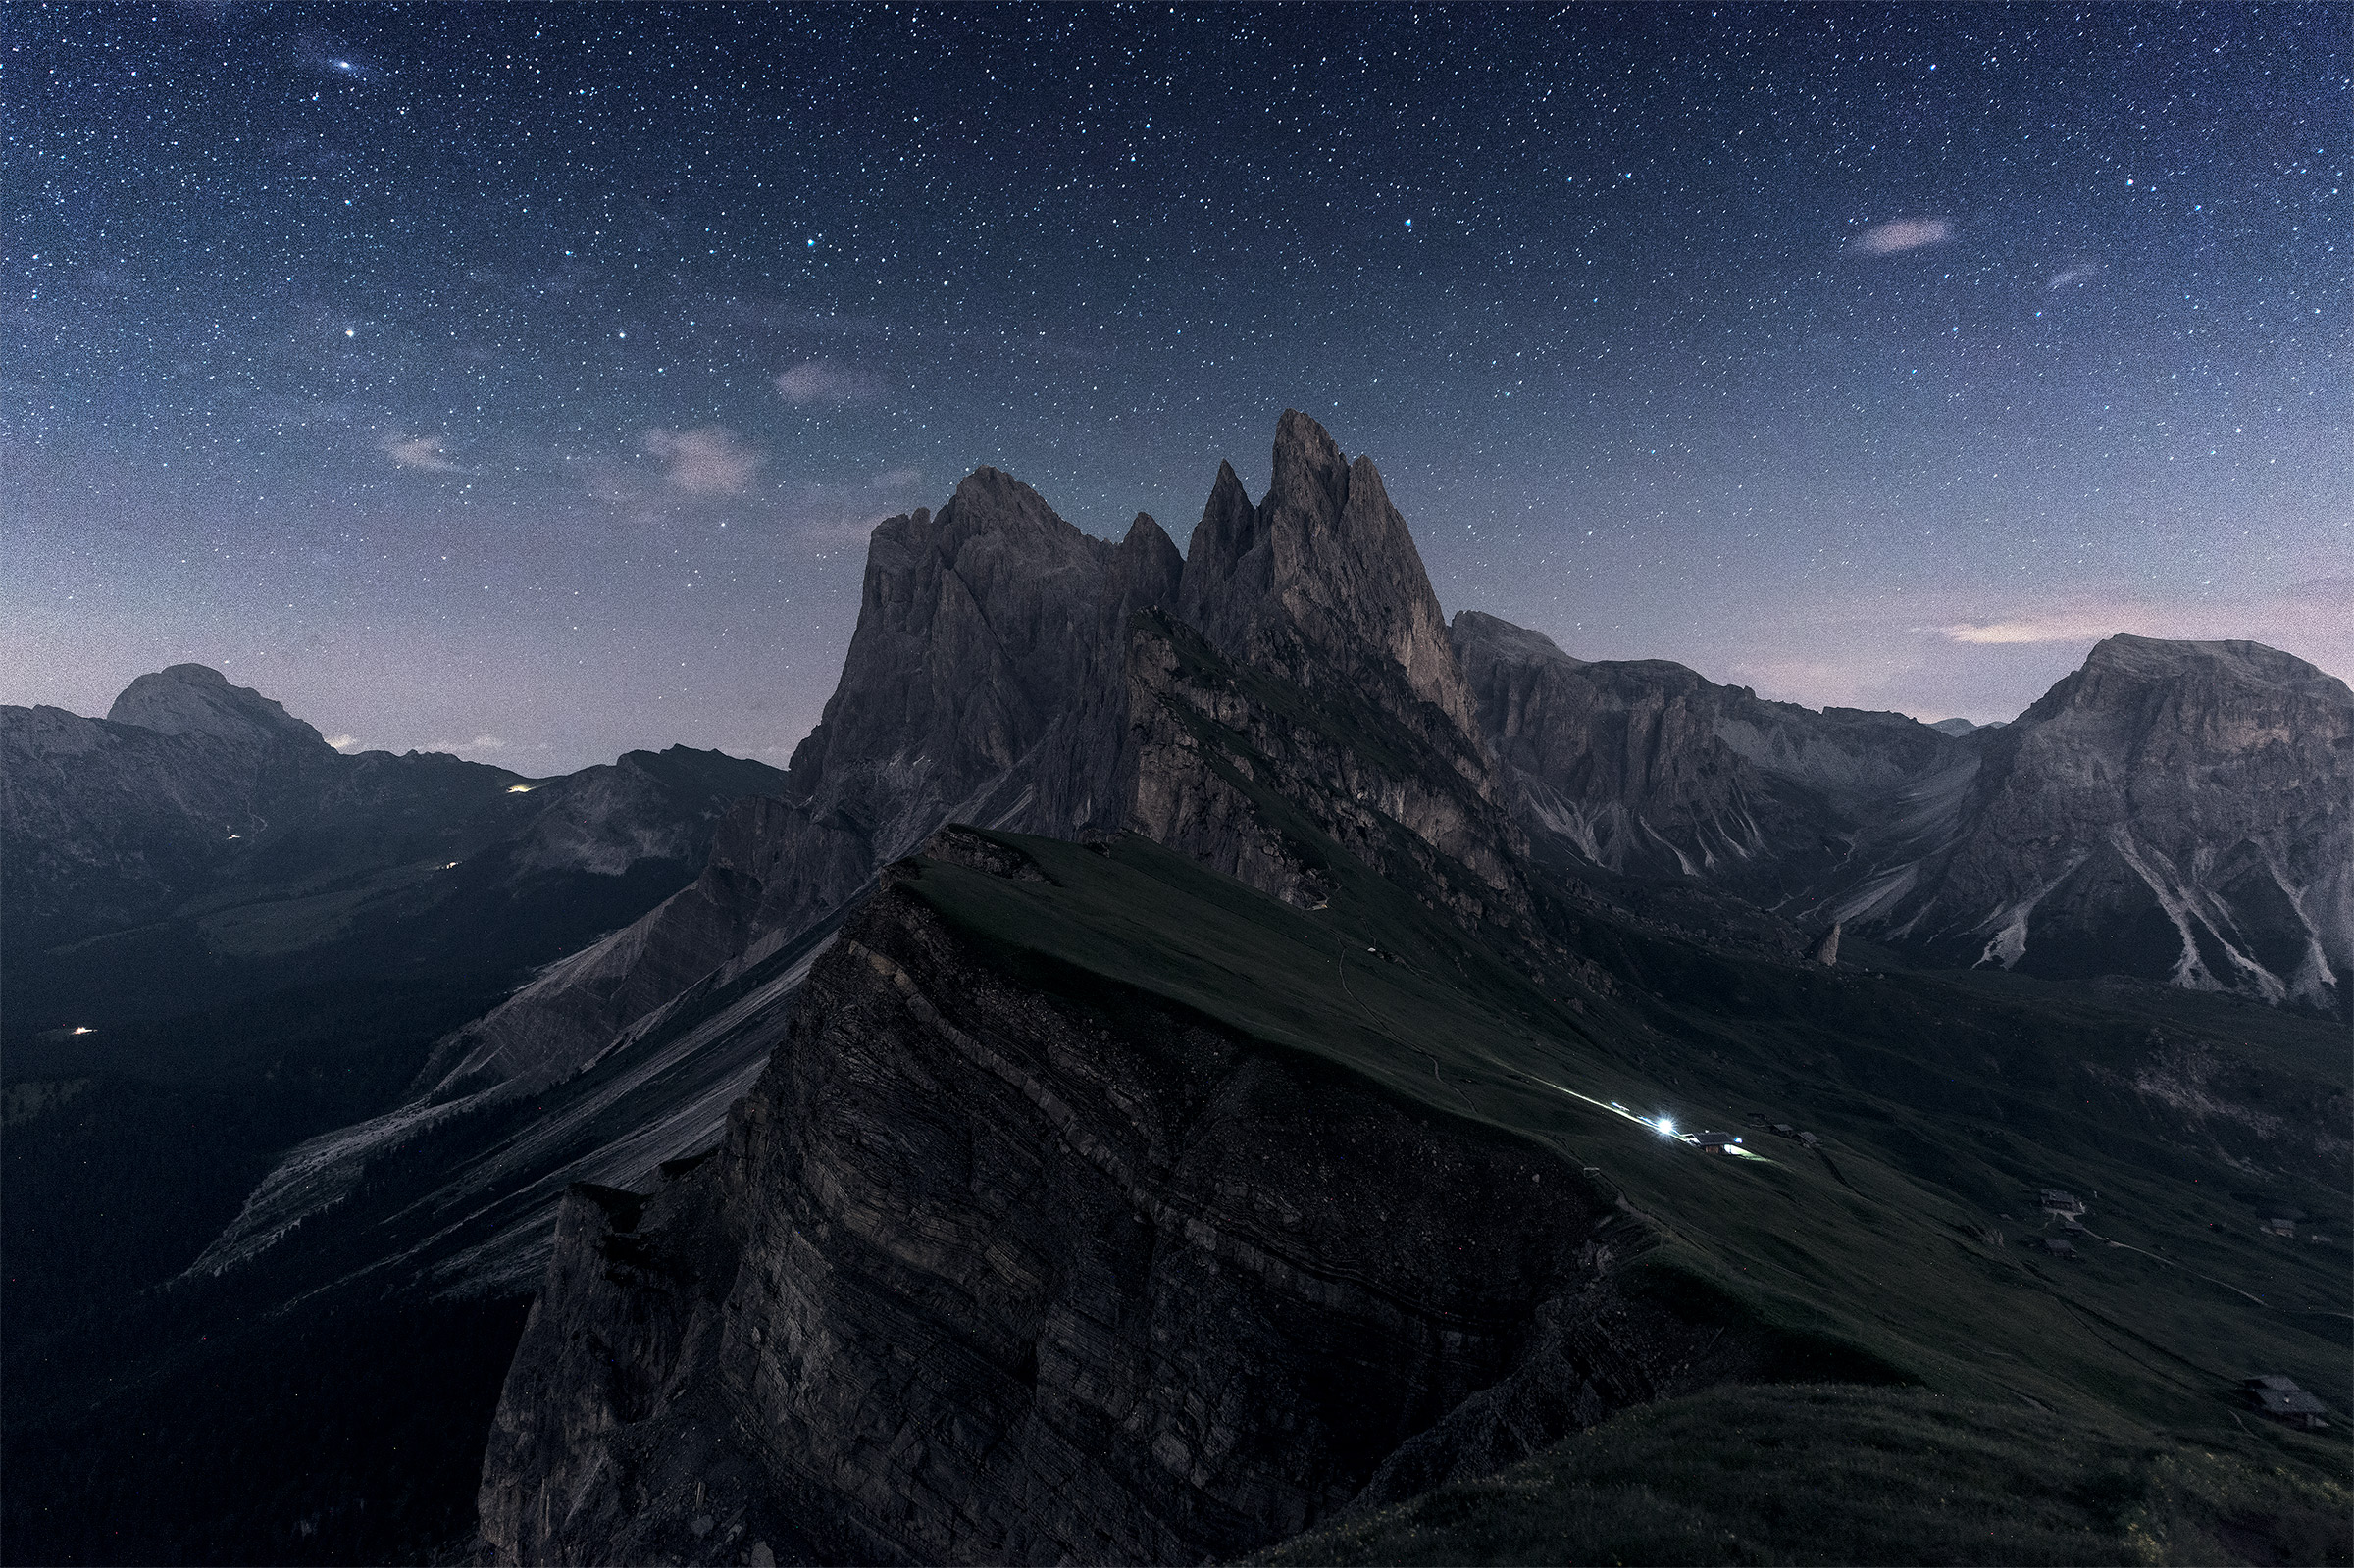 Seceda at night in our summer adventure photo workshop in the Dolomites